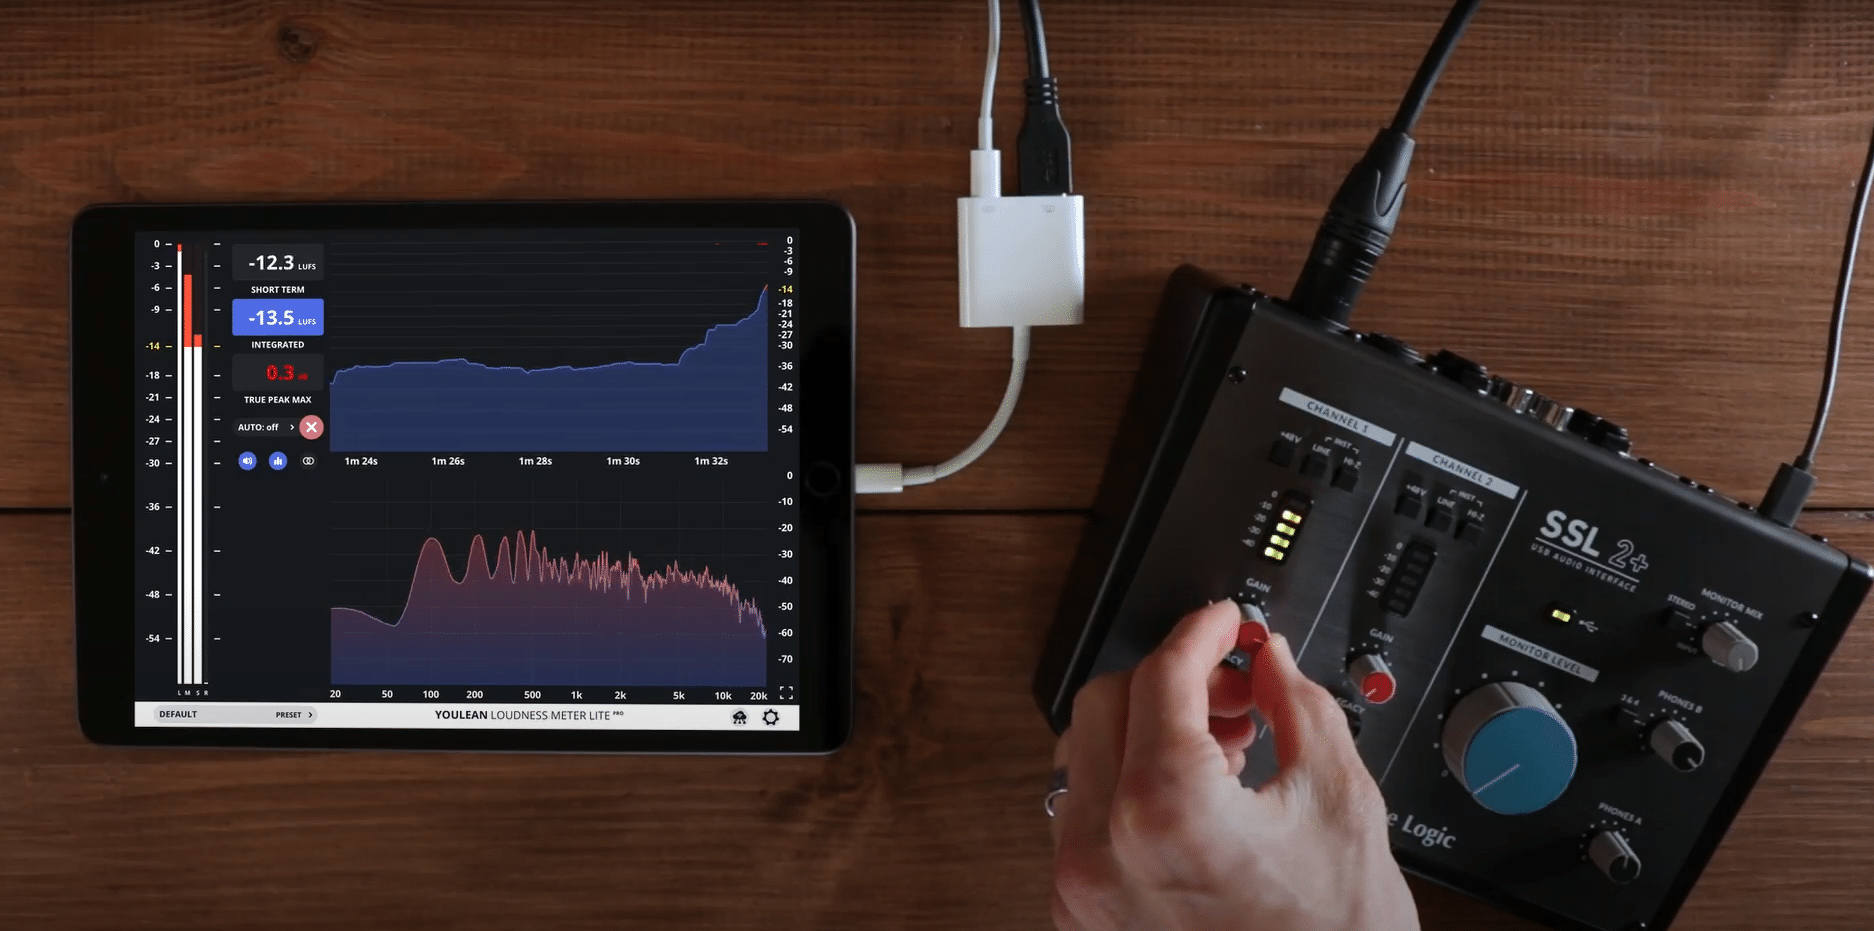 youlean loudness meter lite